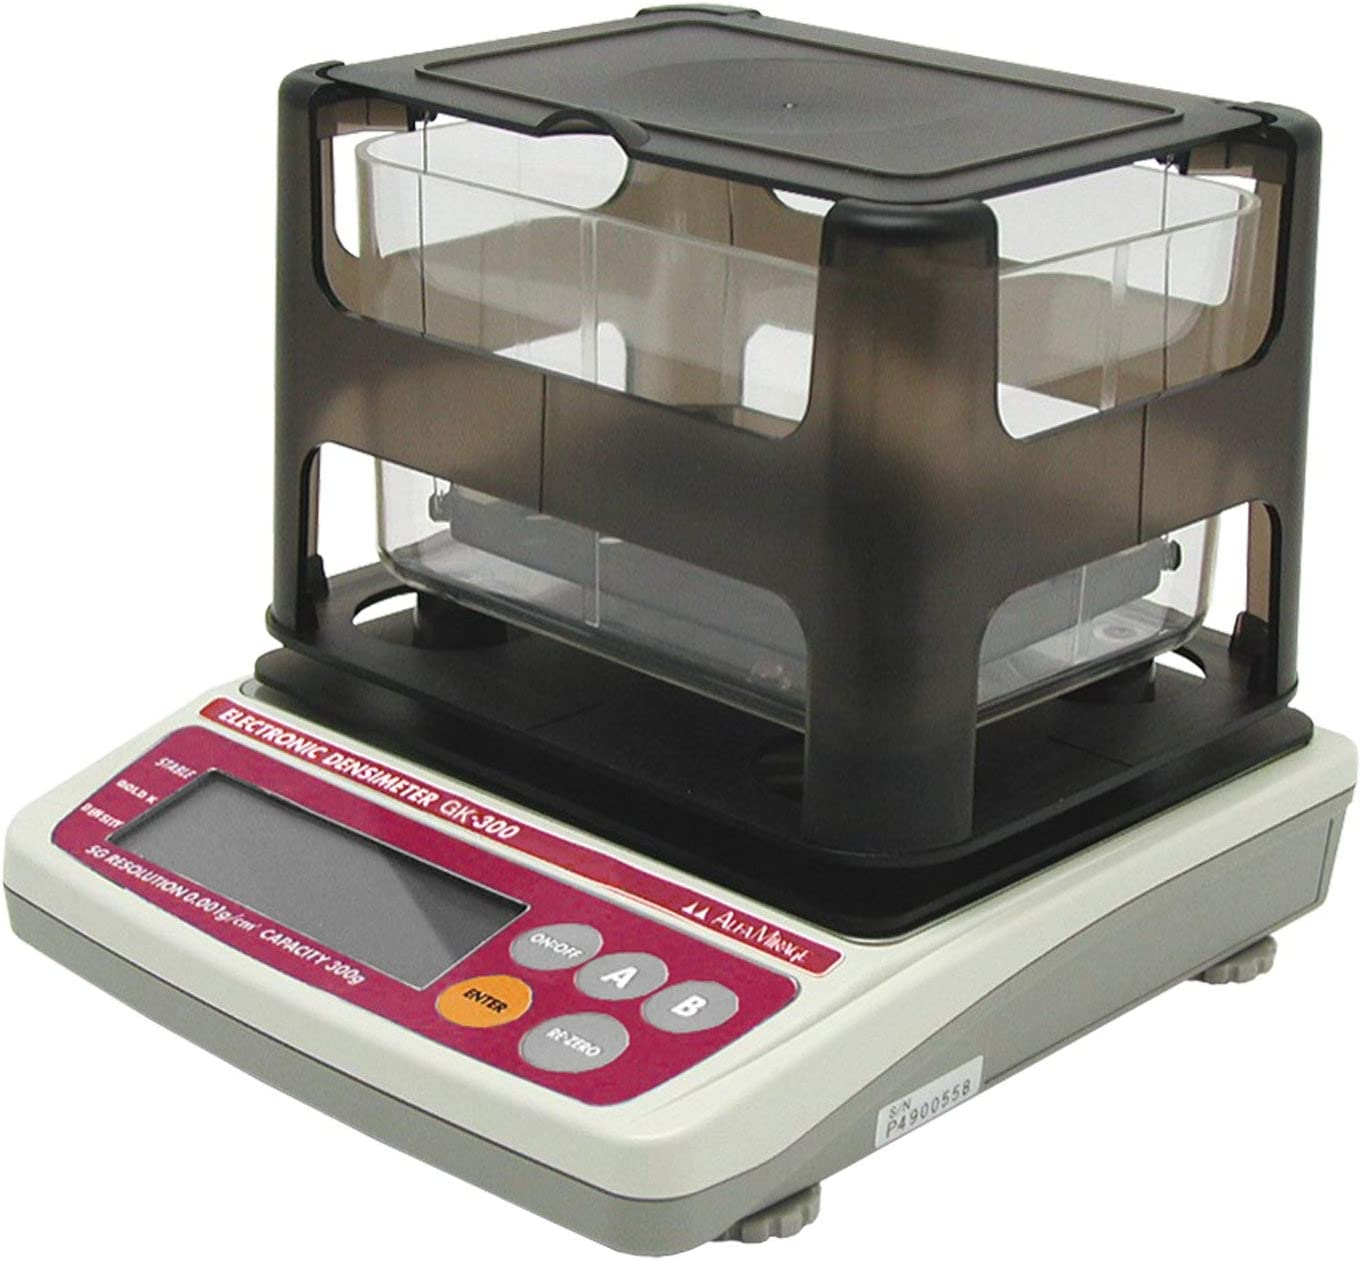 Alfa Mirage GK-300 Precious Metal and Dedication Our shop OFFers the best service Specific Tester Gravity